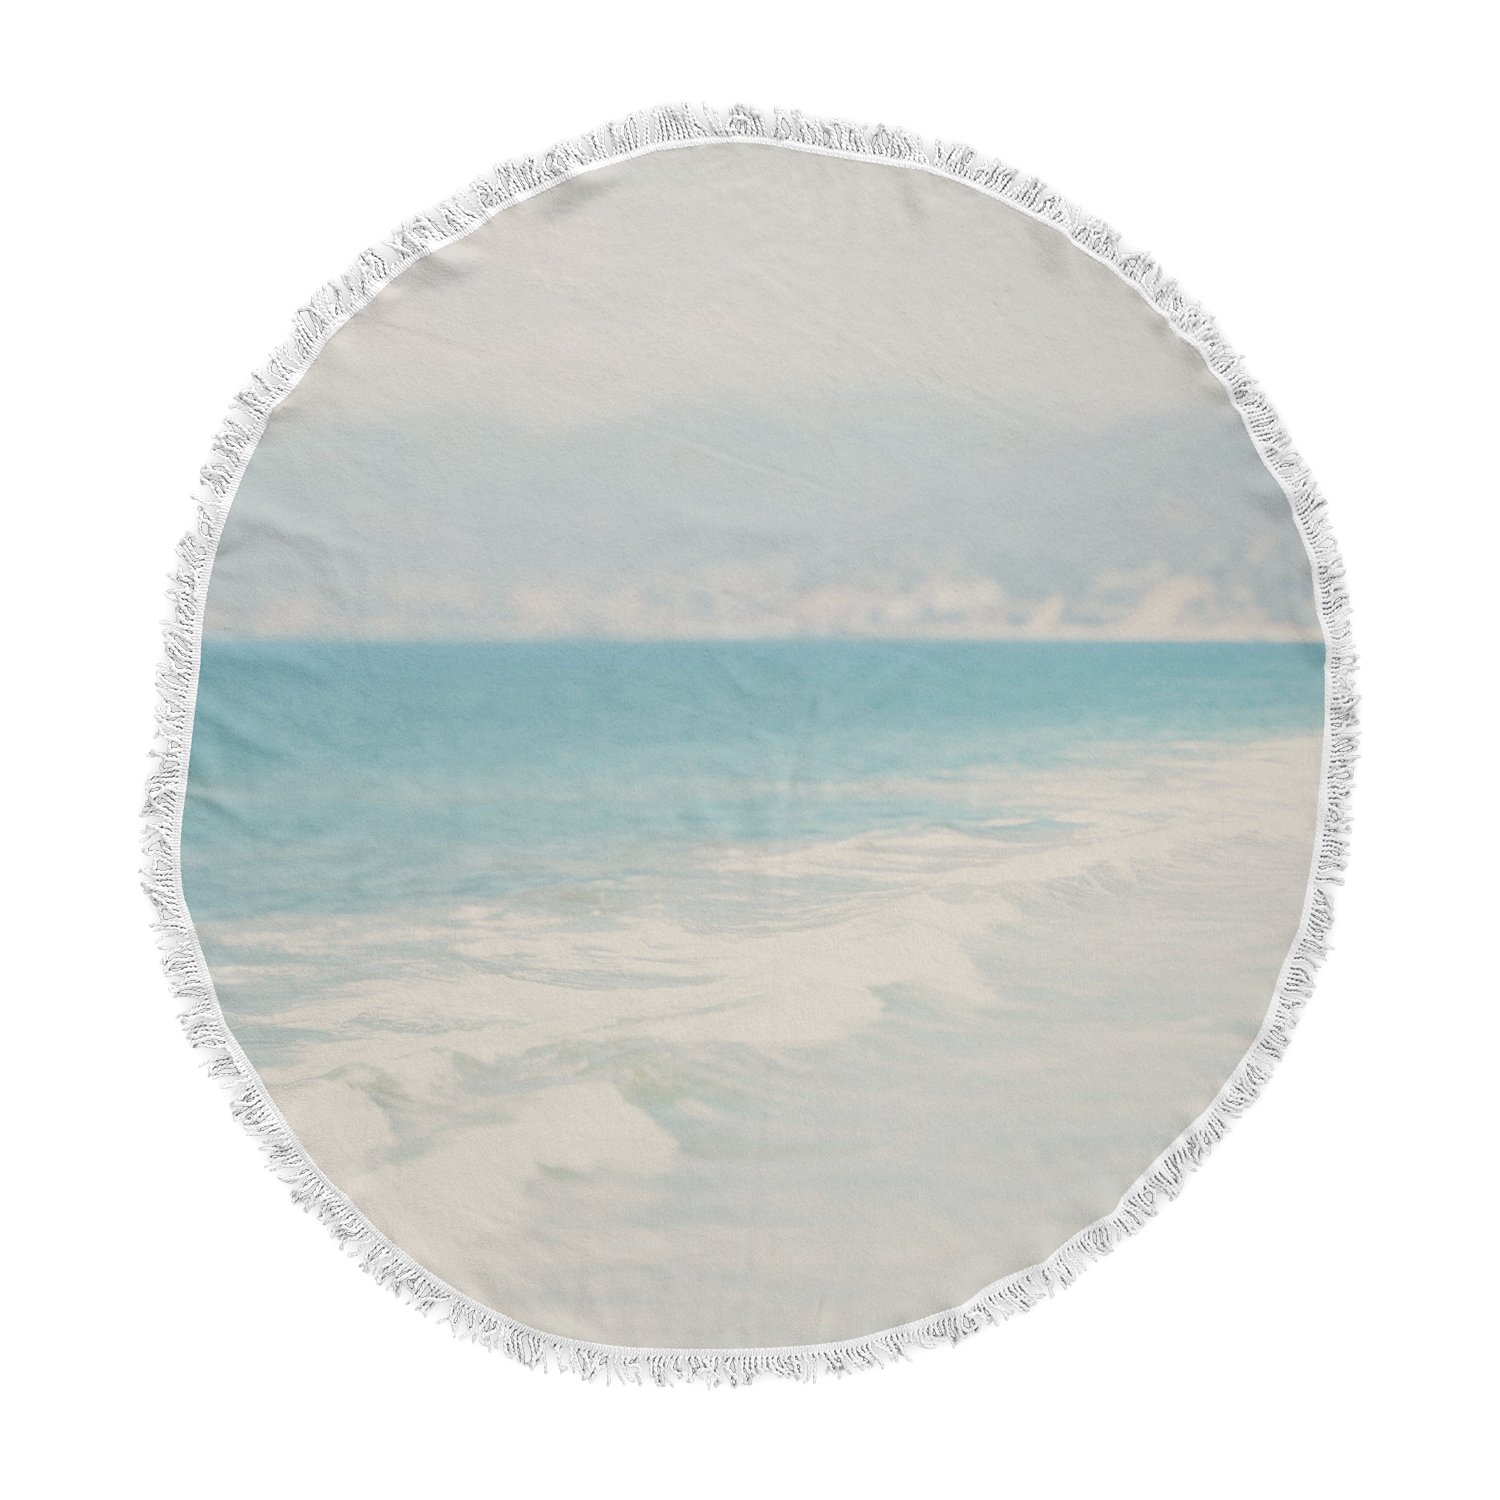 Kess InHouse Laura Evans Waves Blue Gray Round Beach Towel Blanket